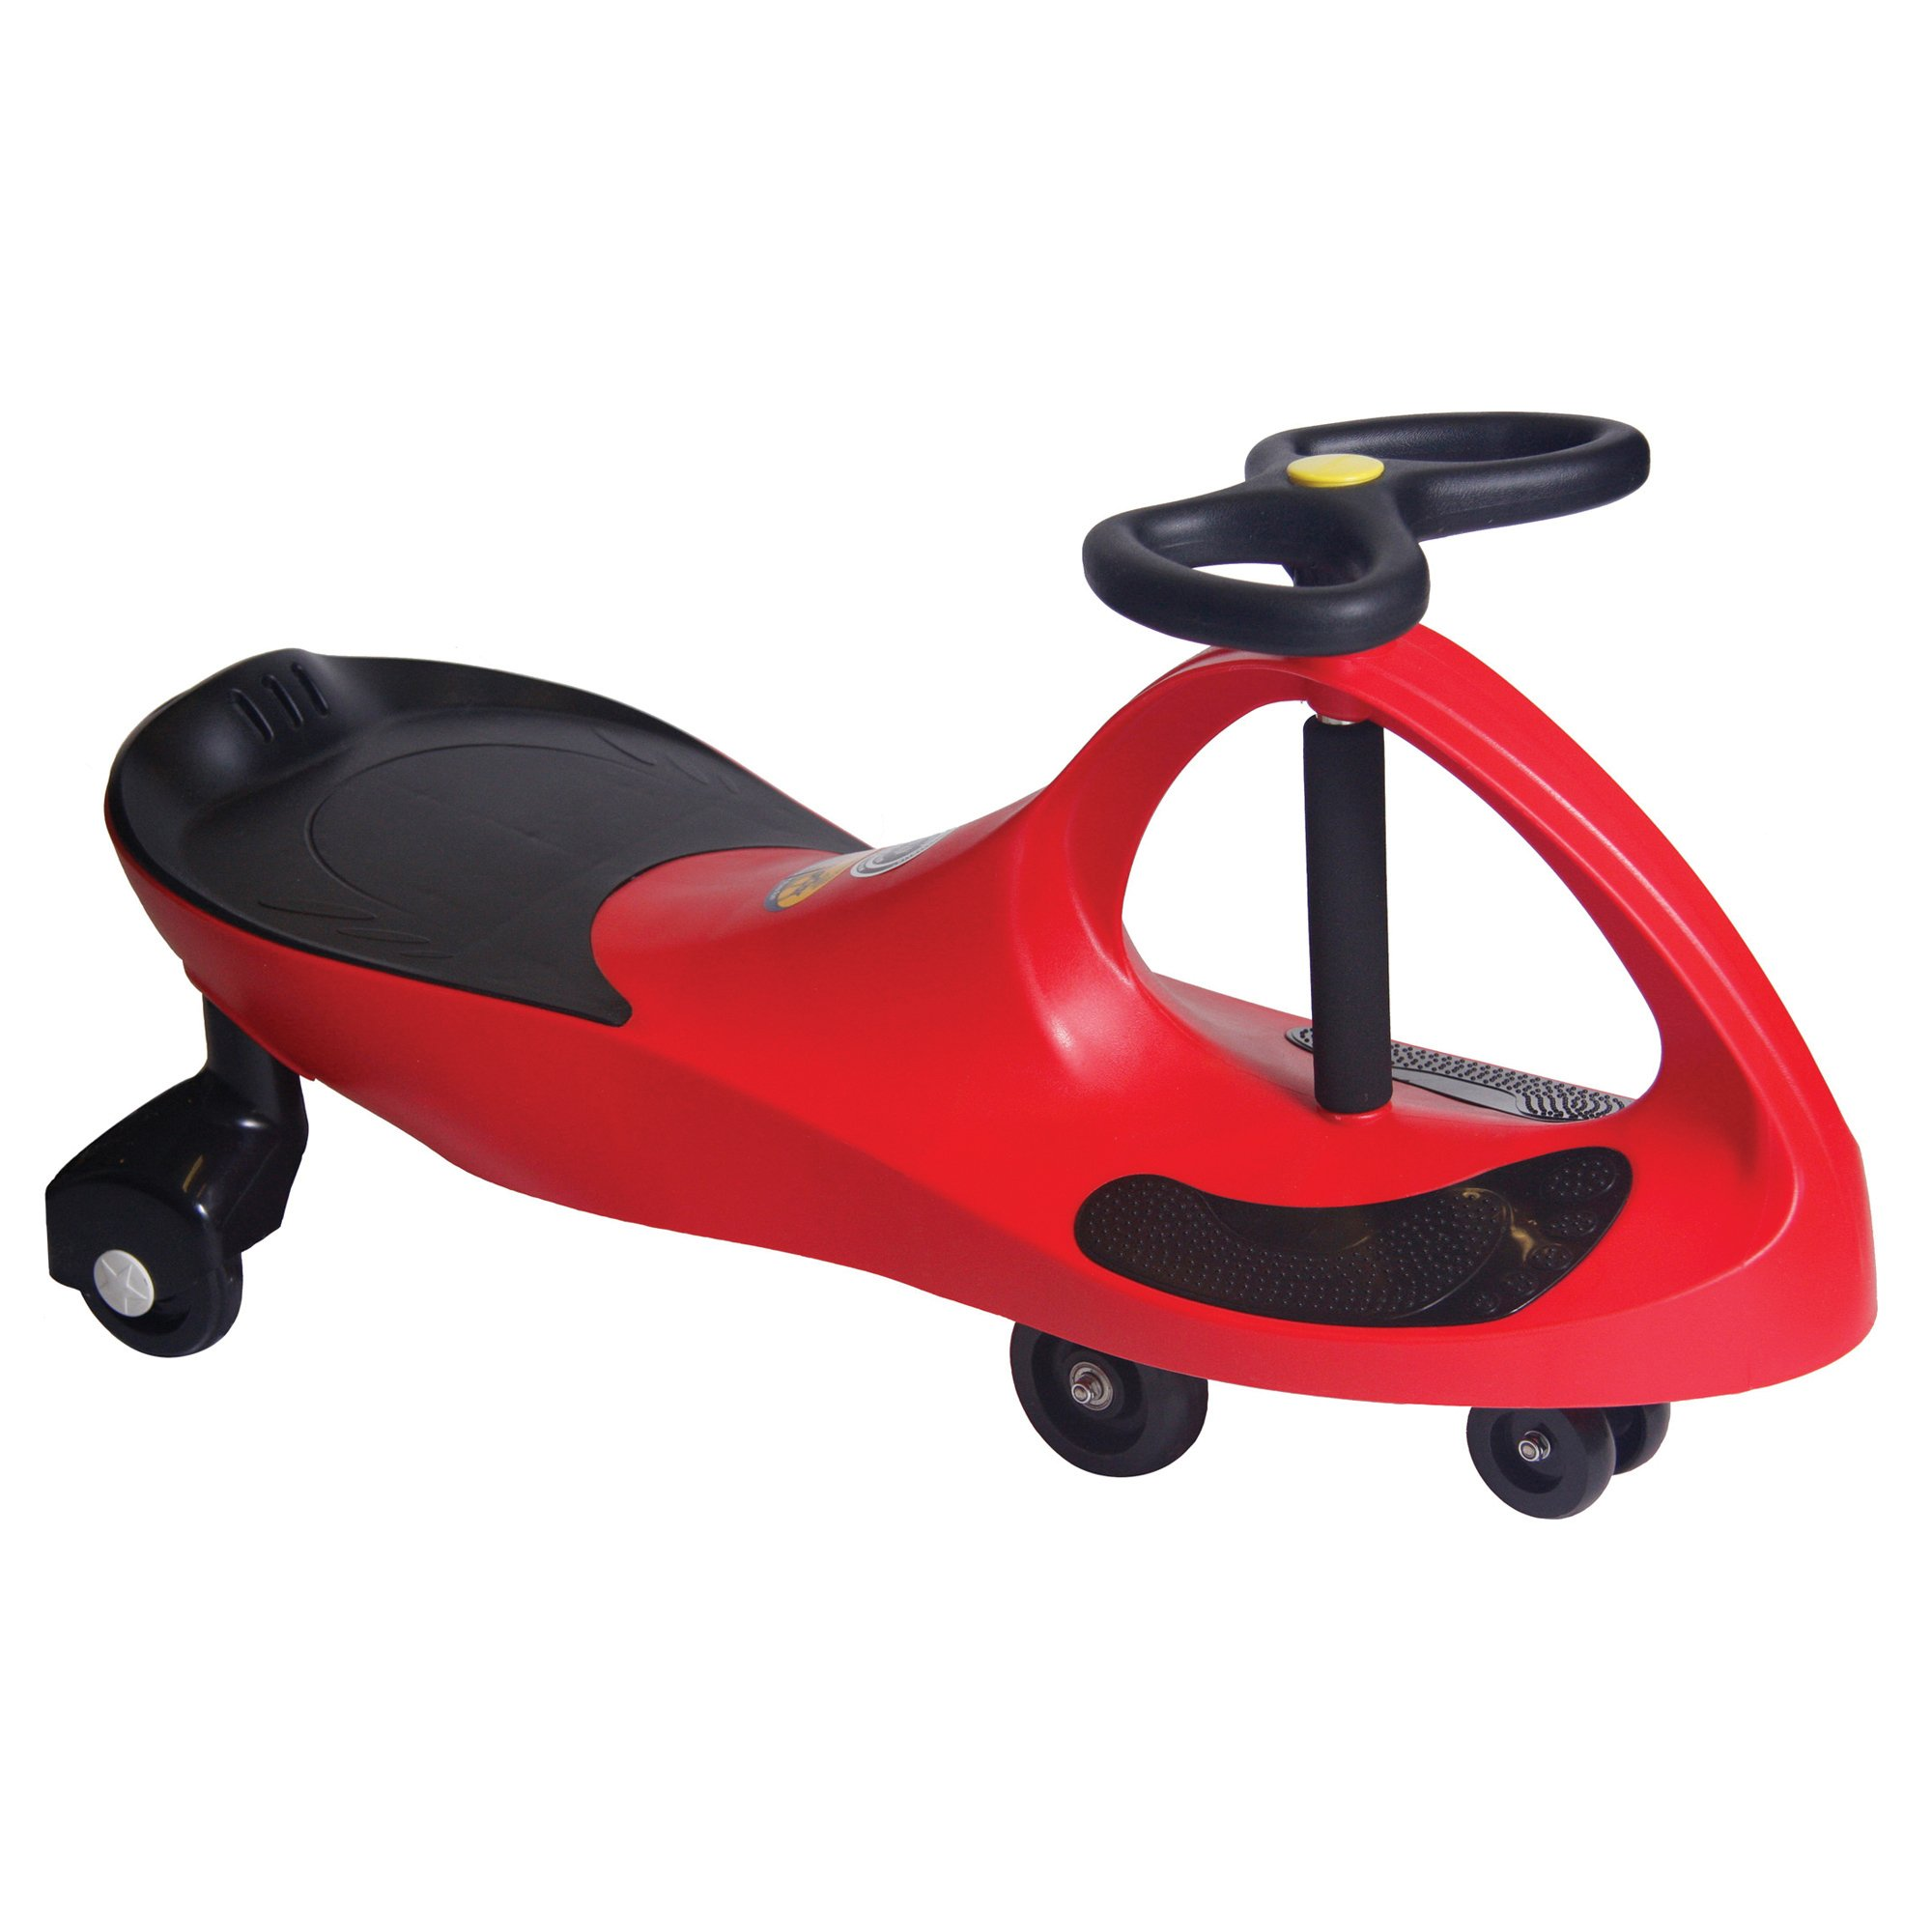 PlasmaCar The Original by PlaSmart – Red – Ride On Toy, Ages 3 yrs and Up, No batteries, gears, or pedals, Twist, Turn, Wiggle for endless fun